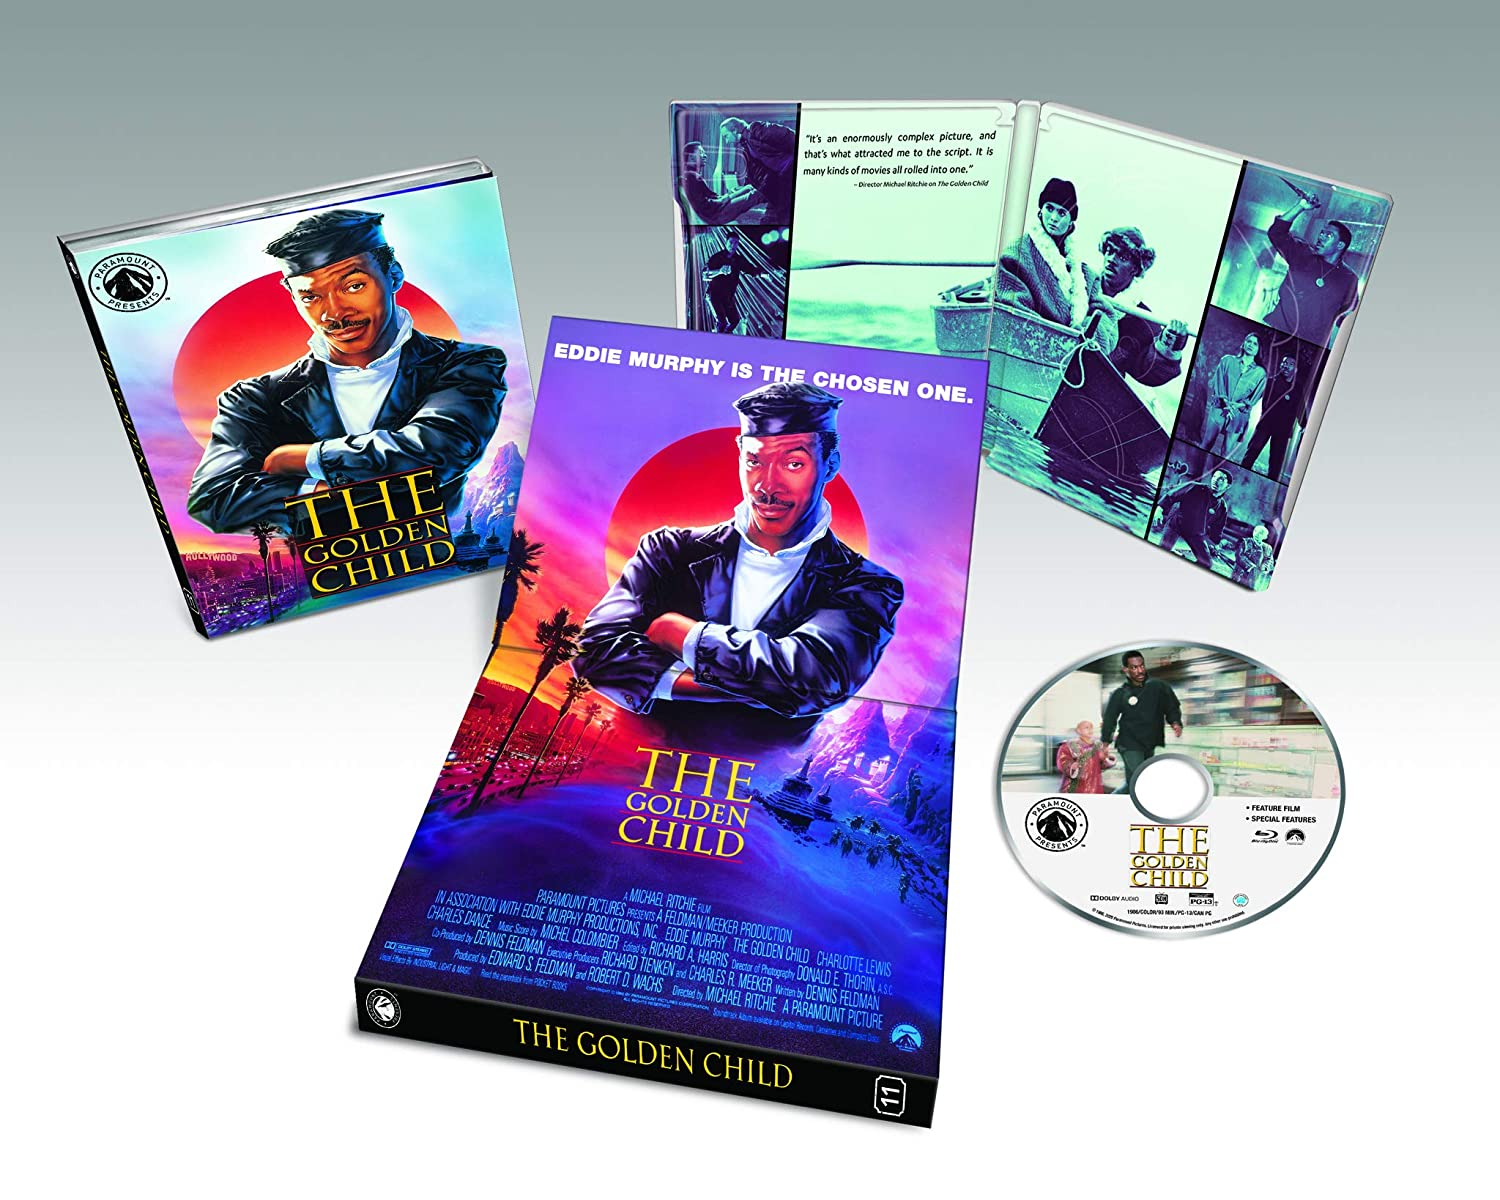 THE GOLDEN CHILD NOW AVAILABLE AS PART OF THE PARAMOUNT PRESENTS LINE